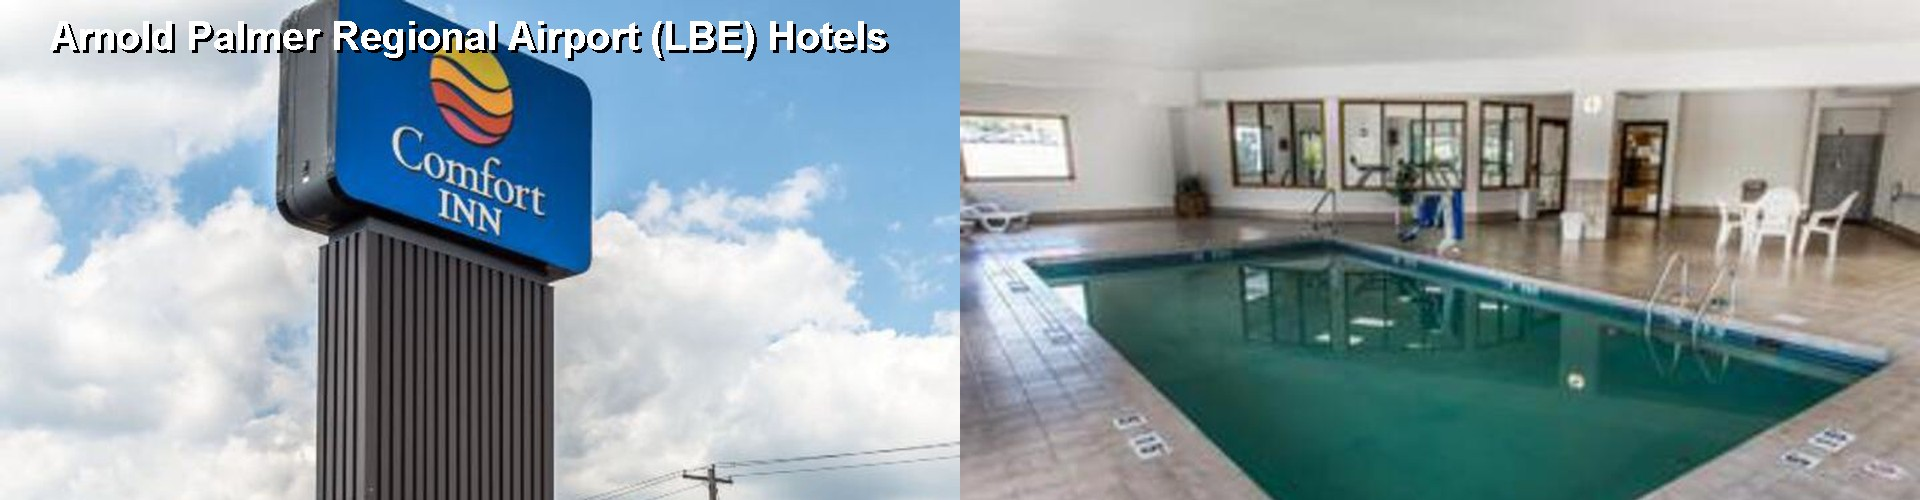 Cheap Hotels In Blairsville Pa